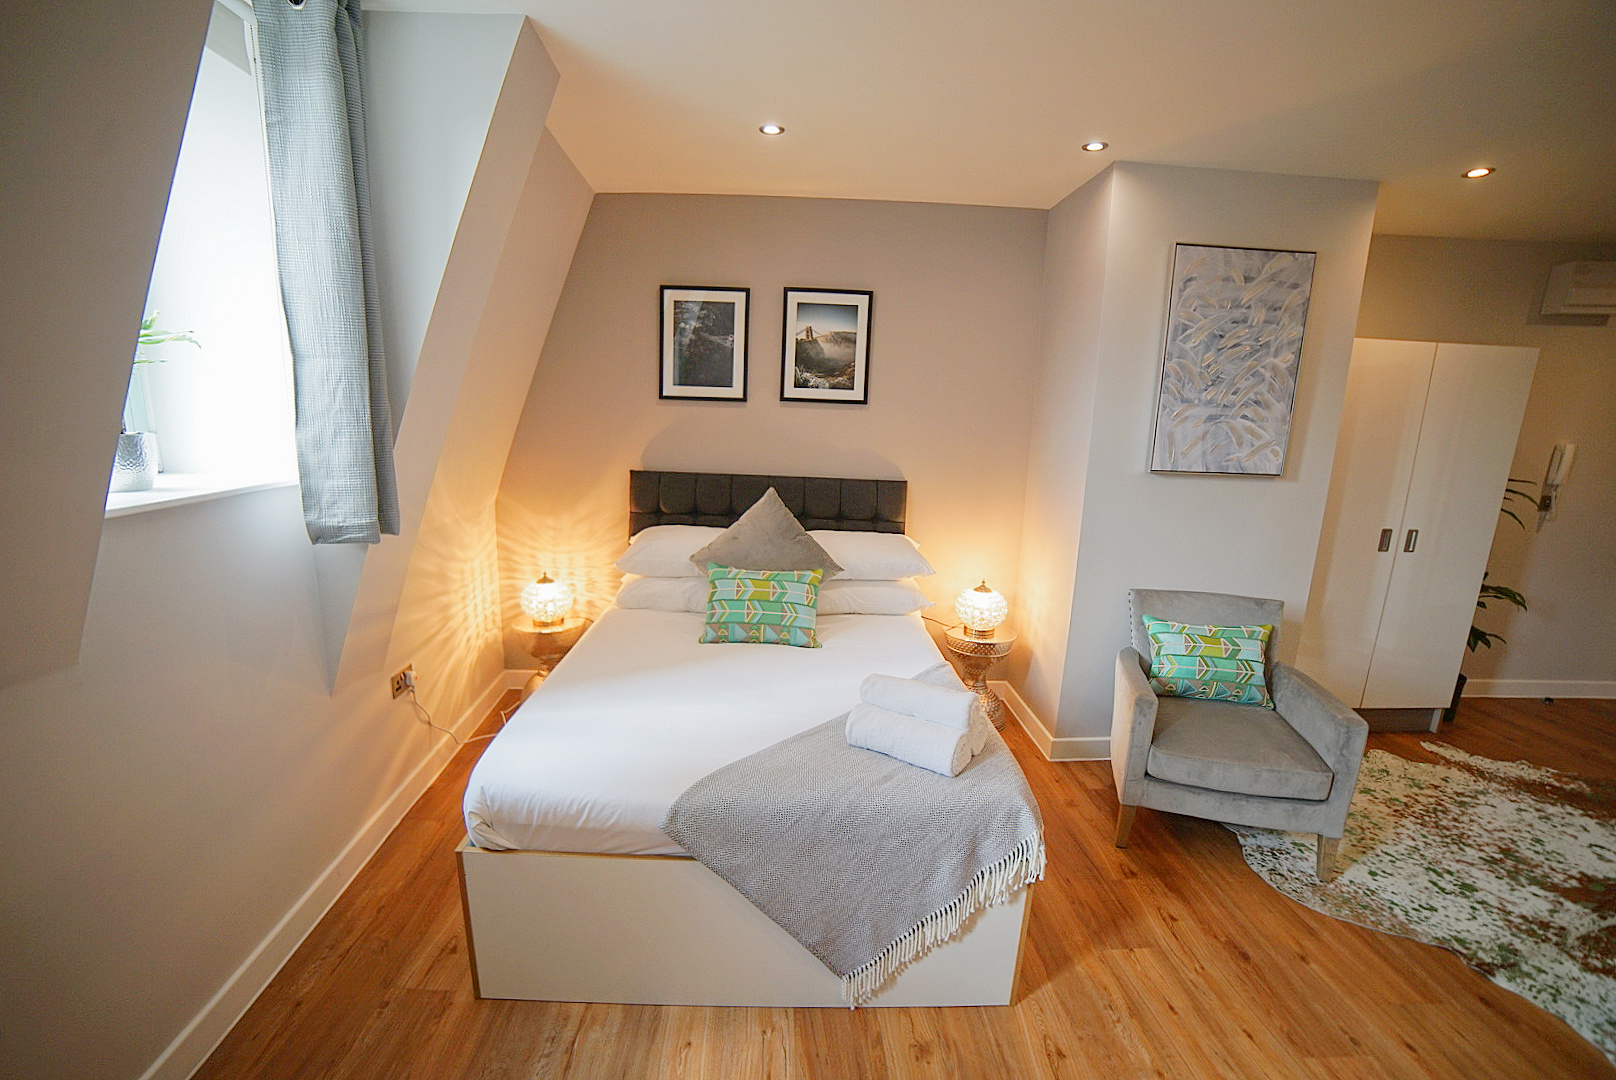 Cosy bed at Prince Street Studios, Centre, Bristol - Citybase Apartments